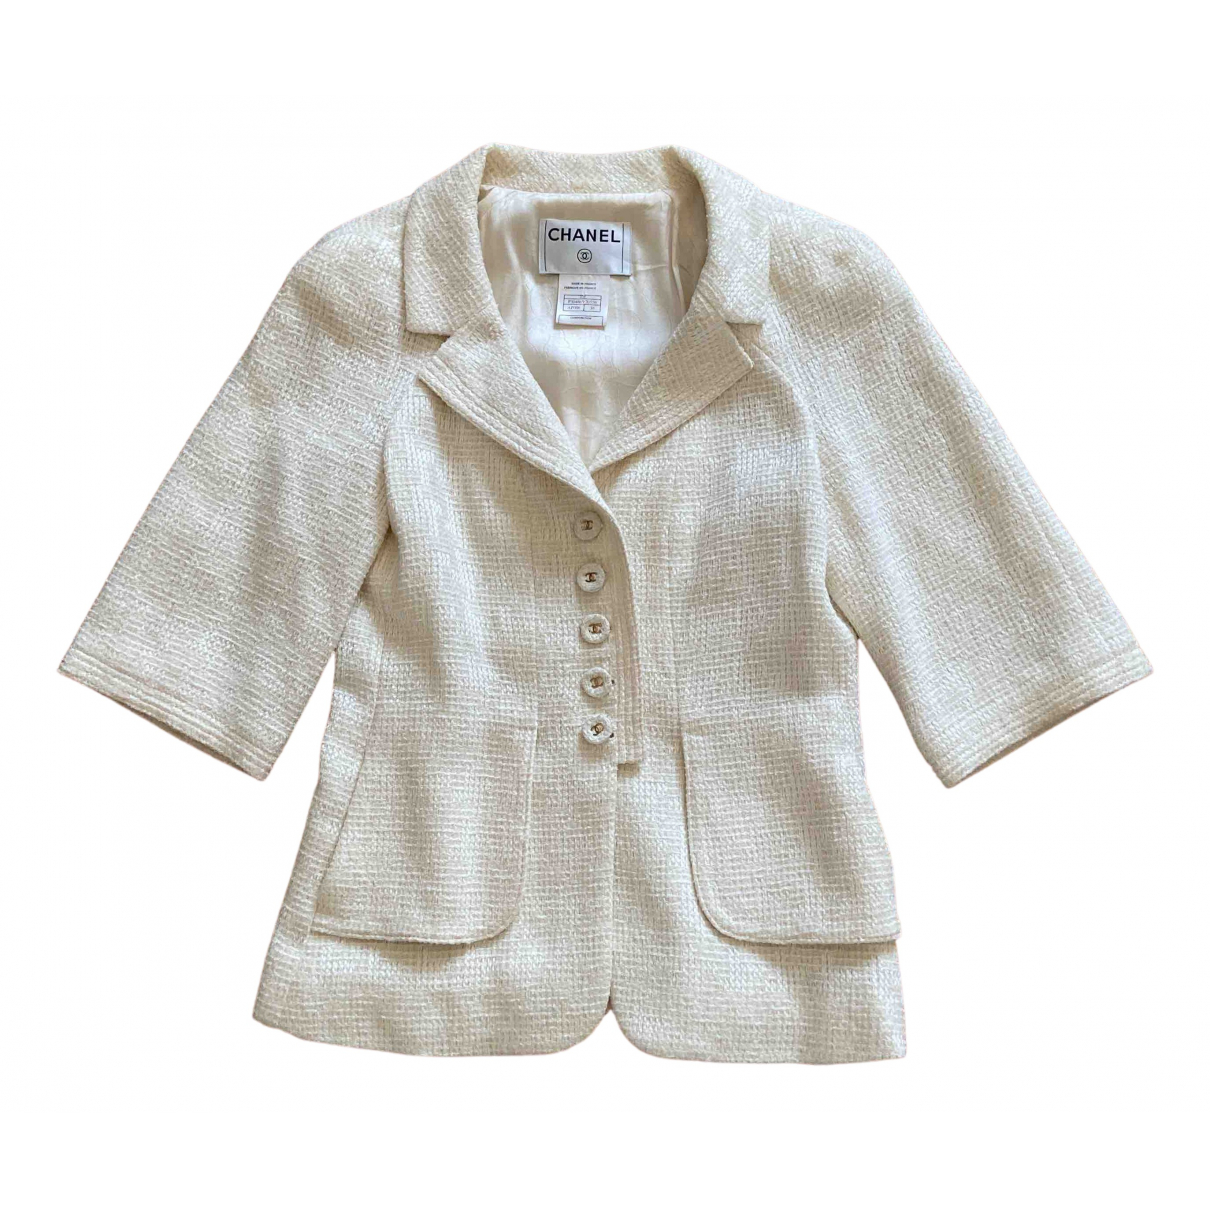 Chanel N White Cotton jacket for Women 38 FR